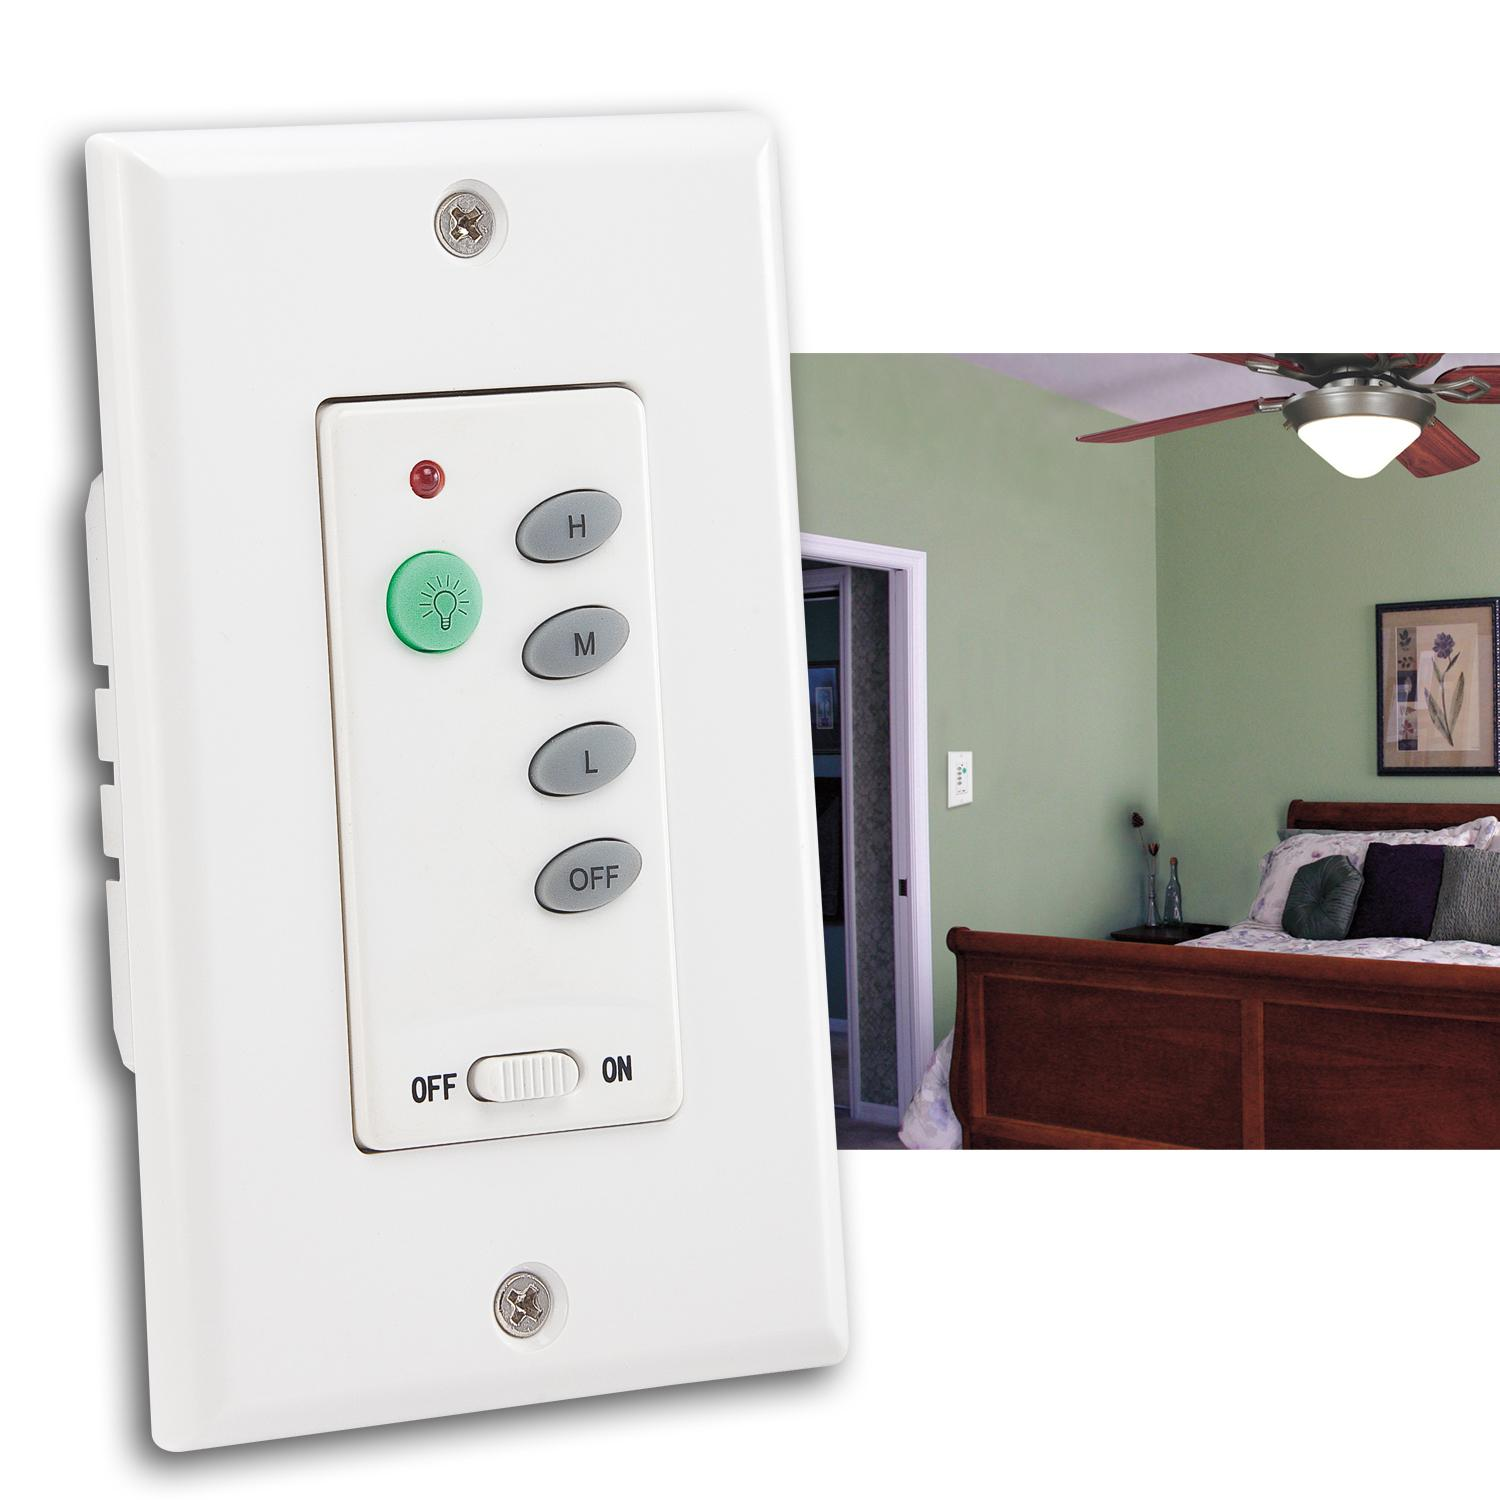 Ceiling Fan Light Dimmer With Fan Switch Pdf 519kb